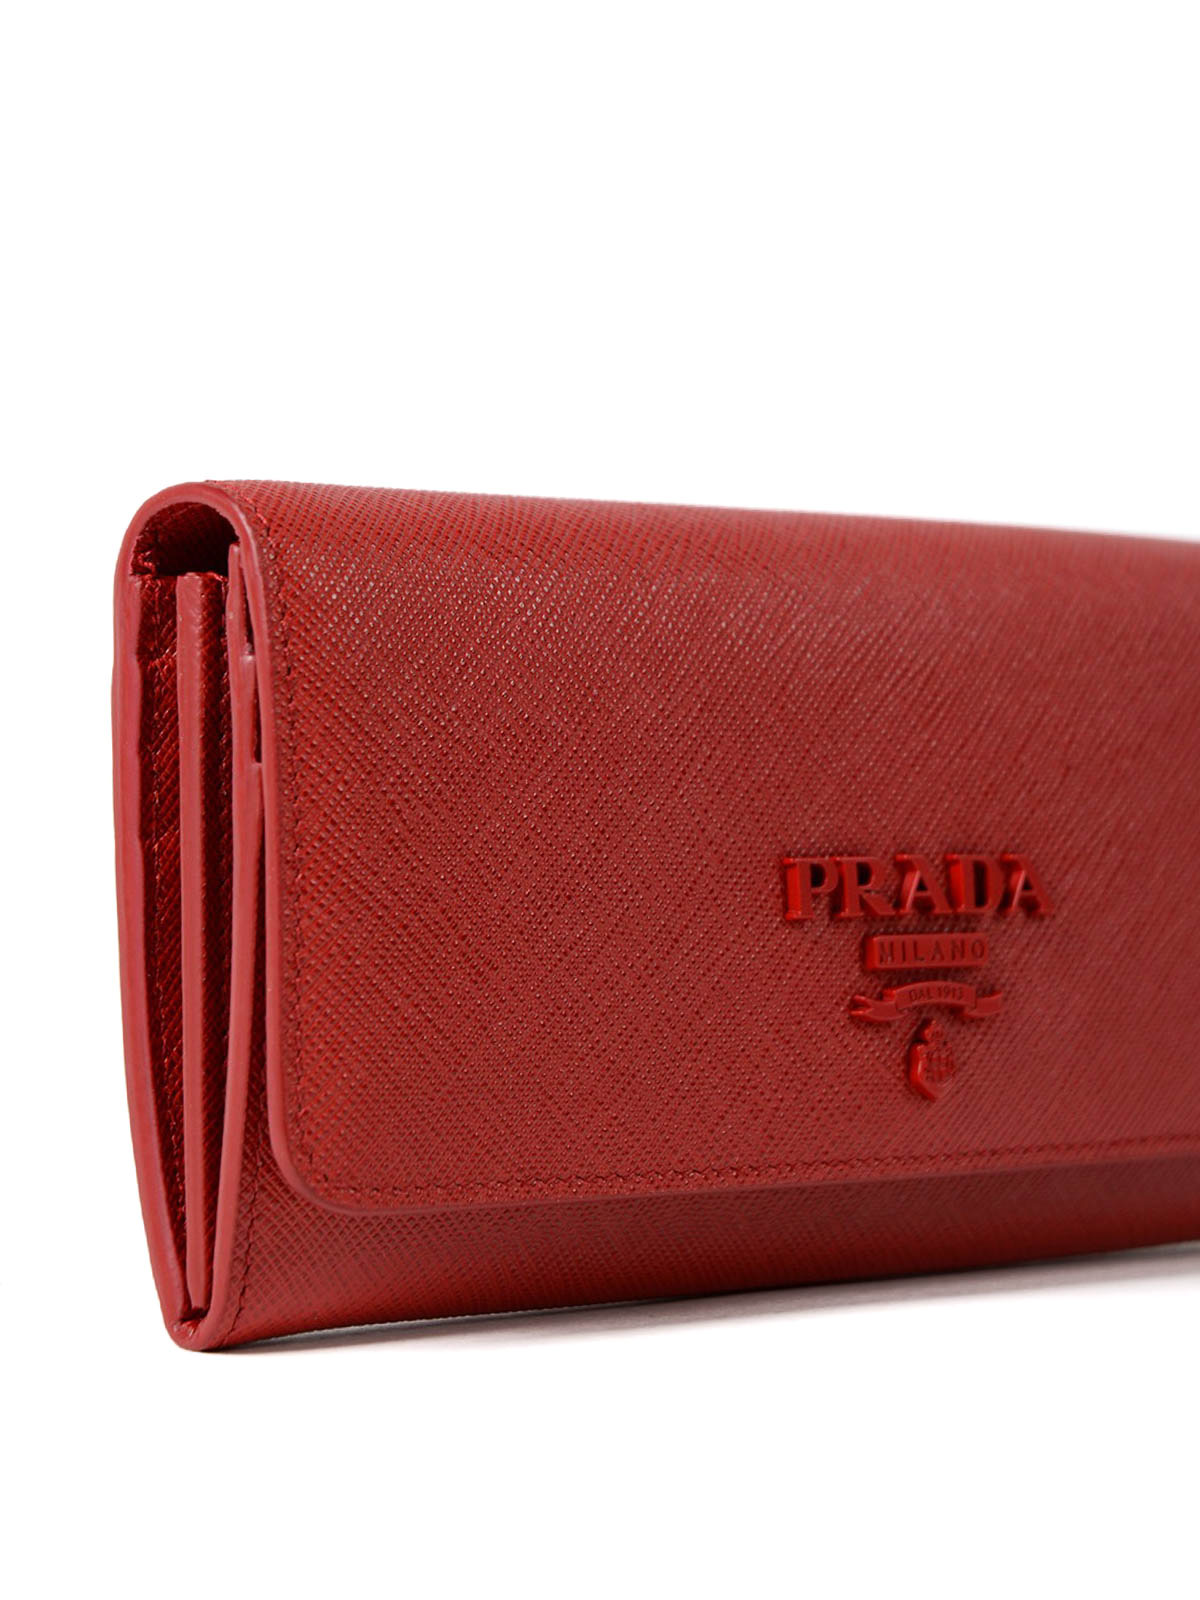 745d14b95cb7 Prada - Red saffiano continental wallet - wallets & purses ...